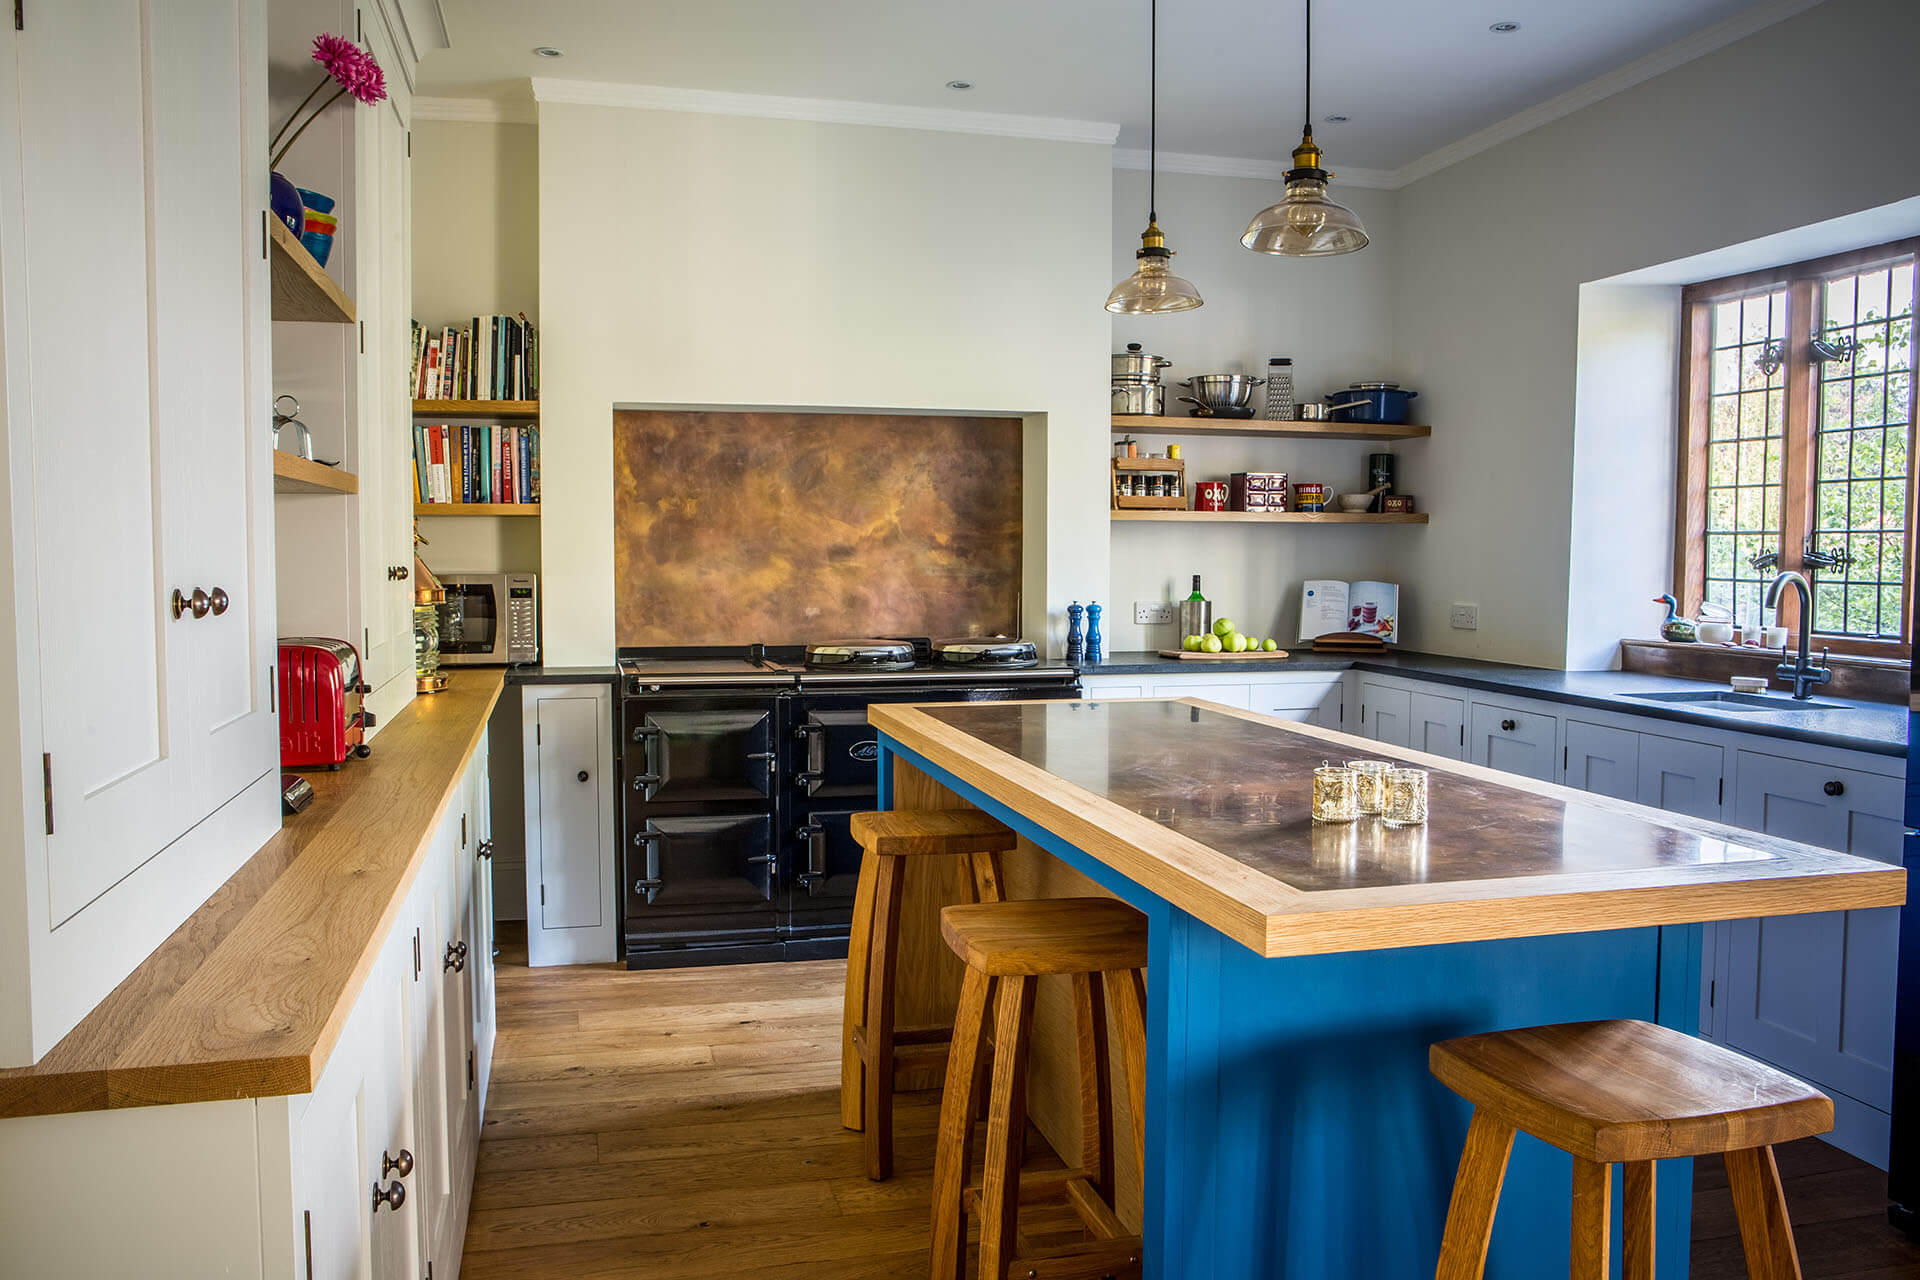 Antiqued brass contemporary kitchen with kitchen centre island and Oak breakfast bar